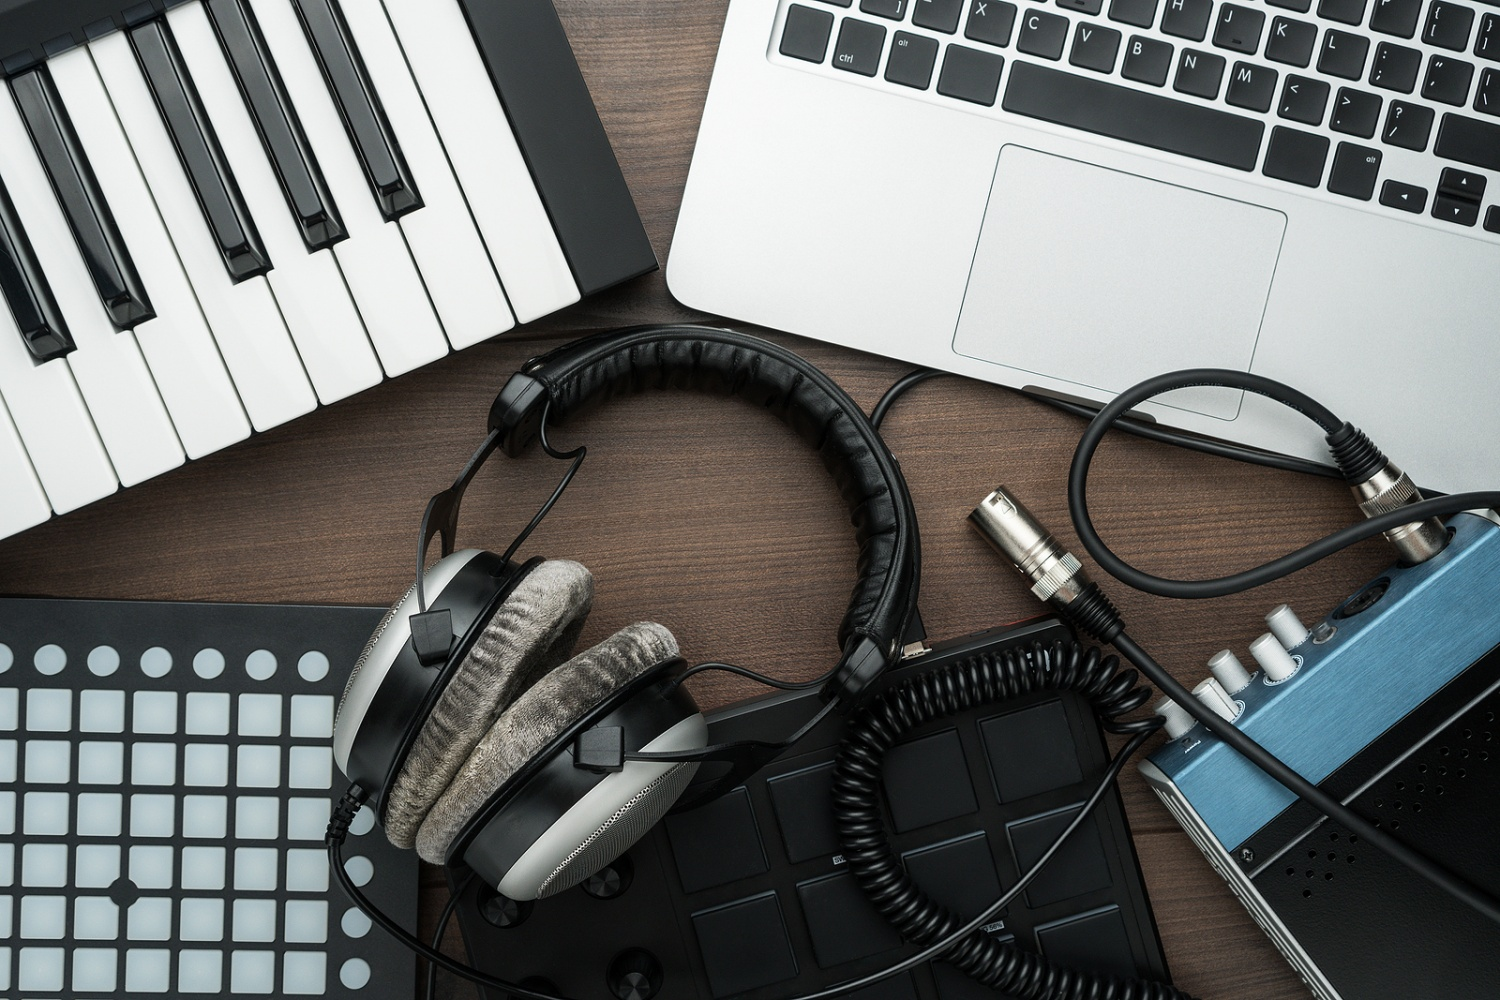 top view of home music studio. music production equipment on the table. music making tools on wooden background.